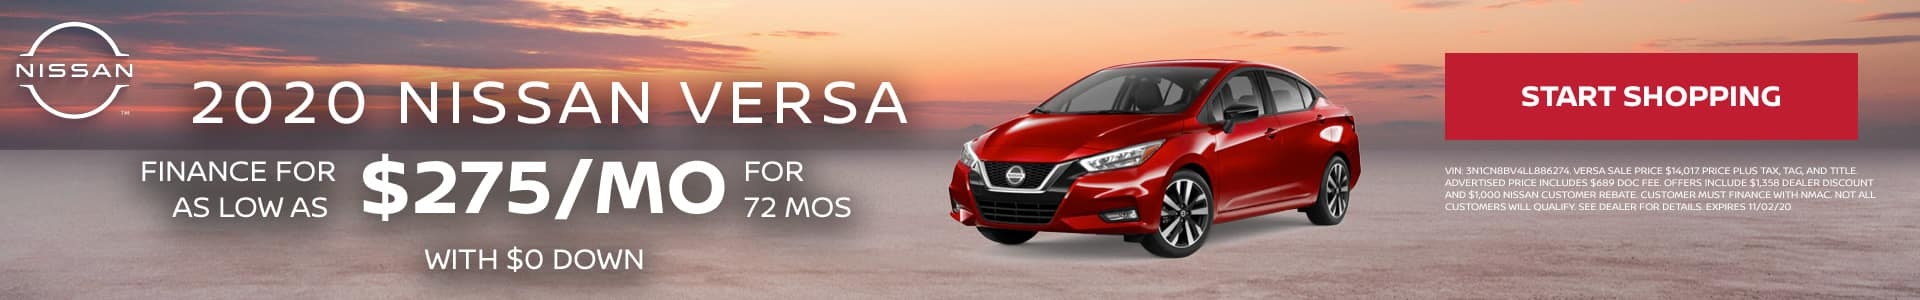 2020 Nissan Versa, as low as $275 per month with $0 Down